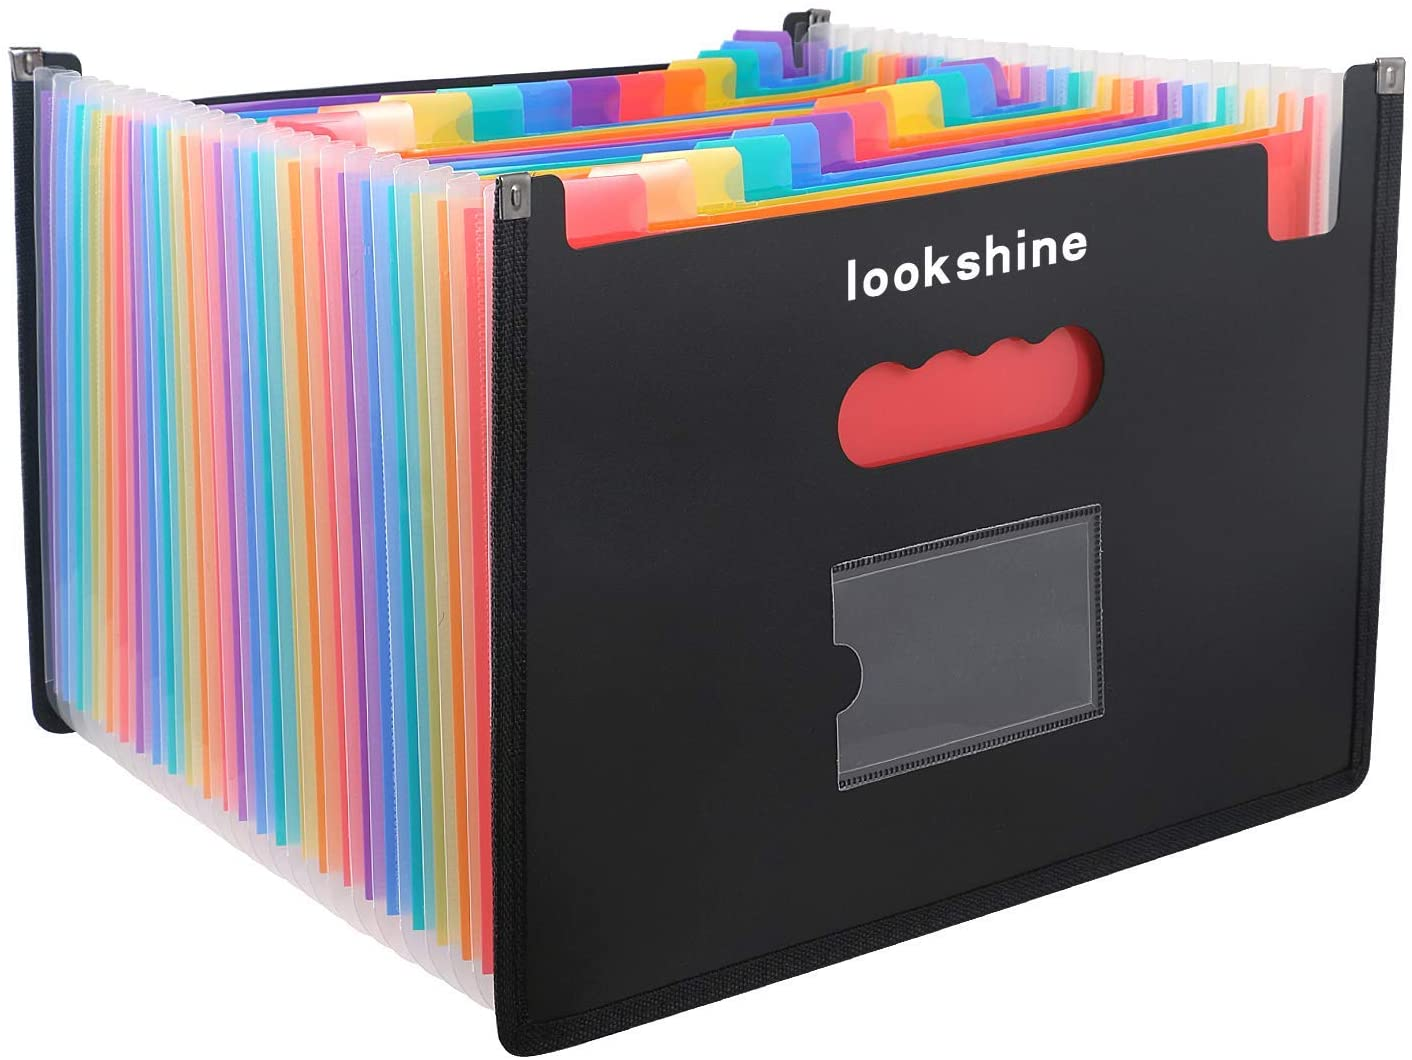 LOOKSHINE 24 Pockets Expanding File Folders, Portable Accordion A4 Expandable File Organizer, Large Capacity Multicolour Stand Plastic Business File Bag for Business/Office/Study